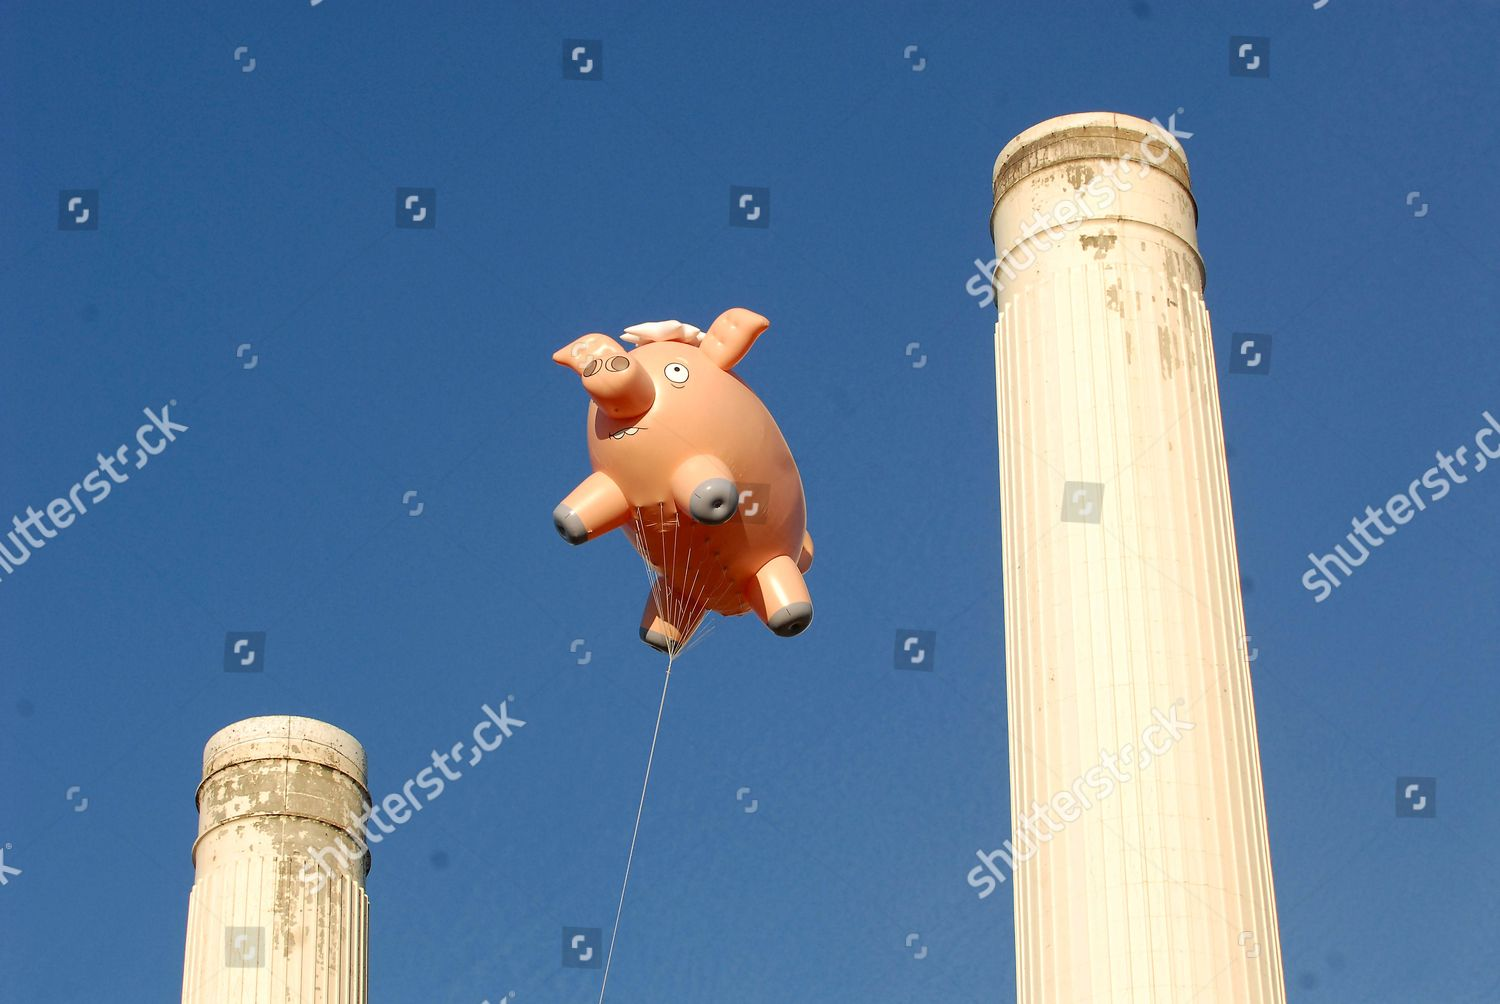 Giant Spider Pig Flies Over Battersea Power Editorial Stock Photo Stock Image Shutterstock